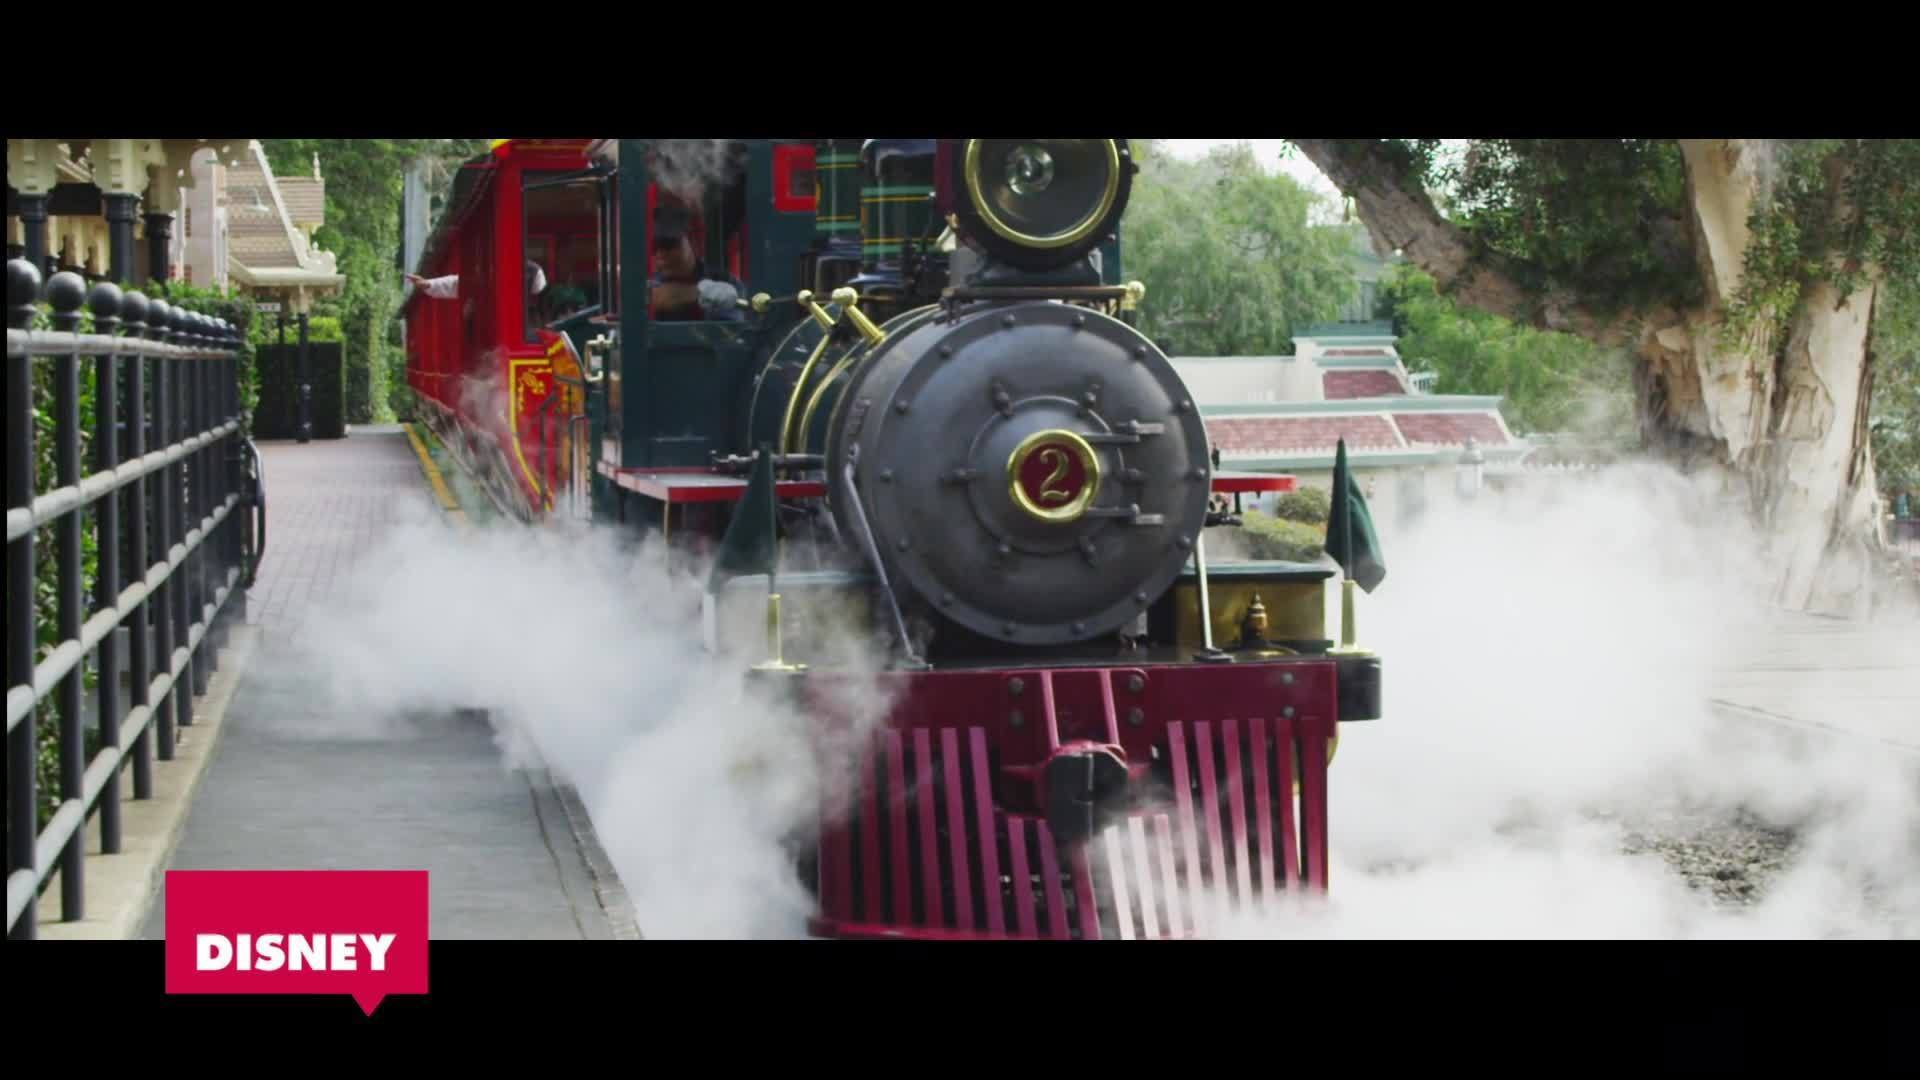 Mesmerizing Disneyland Moments In Slo-Mo